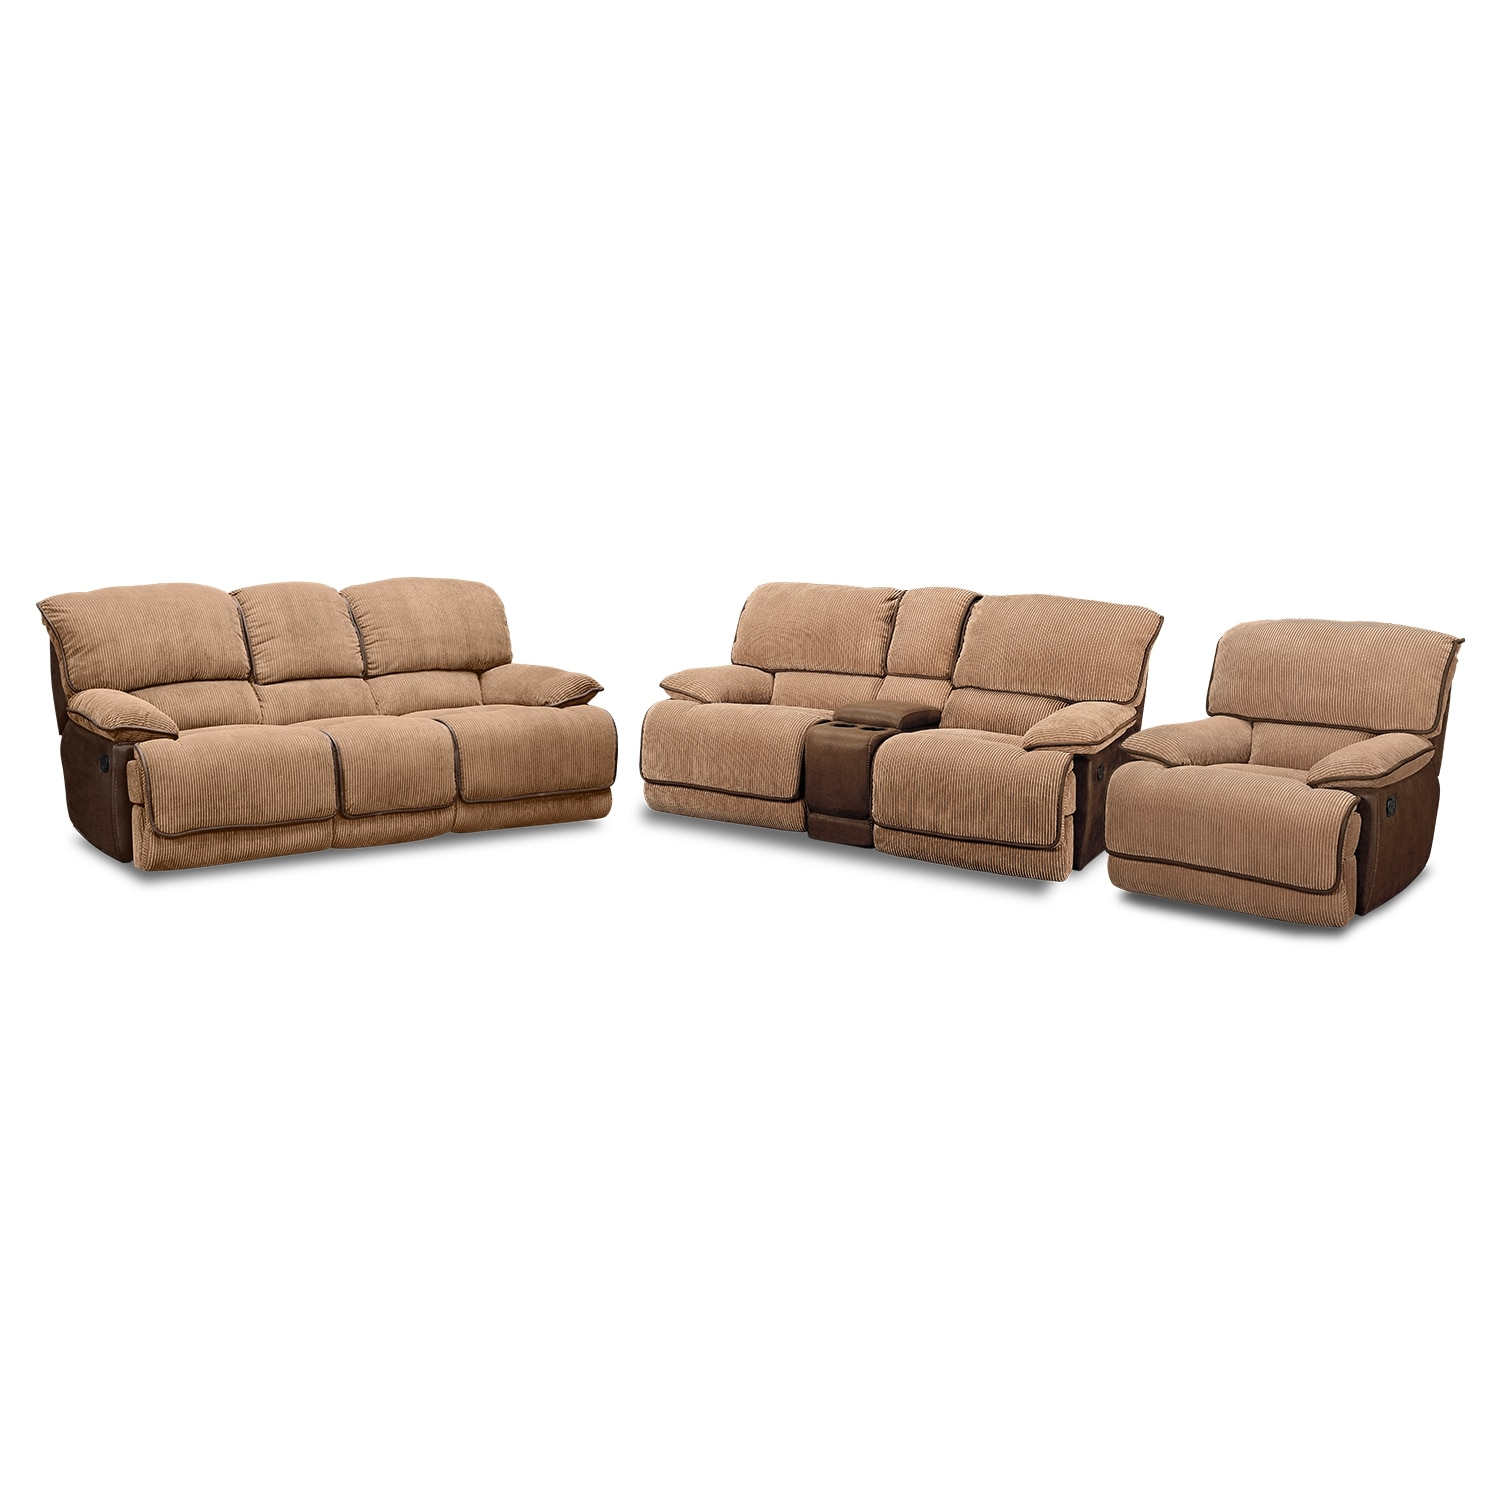 Laguna Reclining Sofa Loveseat And Glider Recliner Set